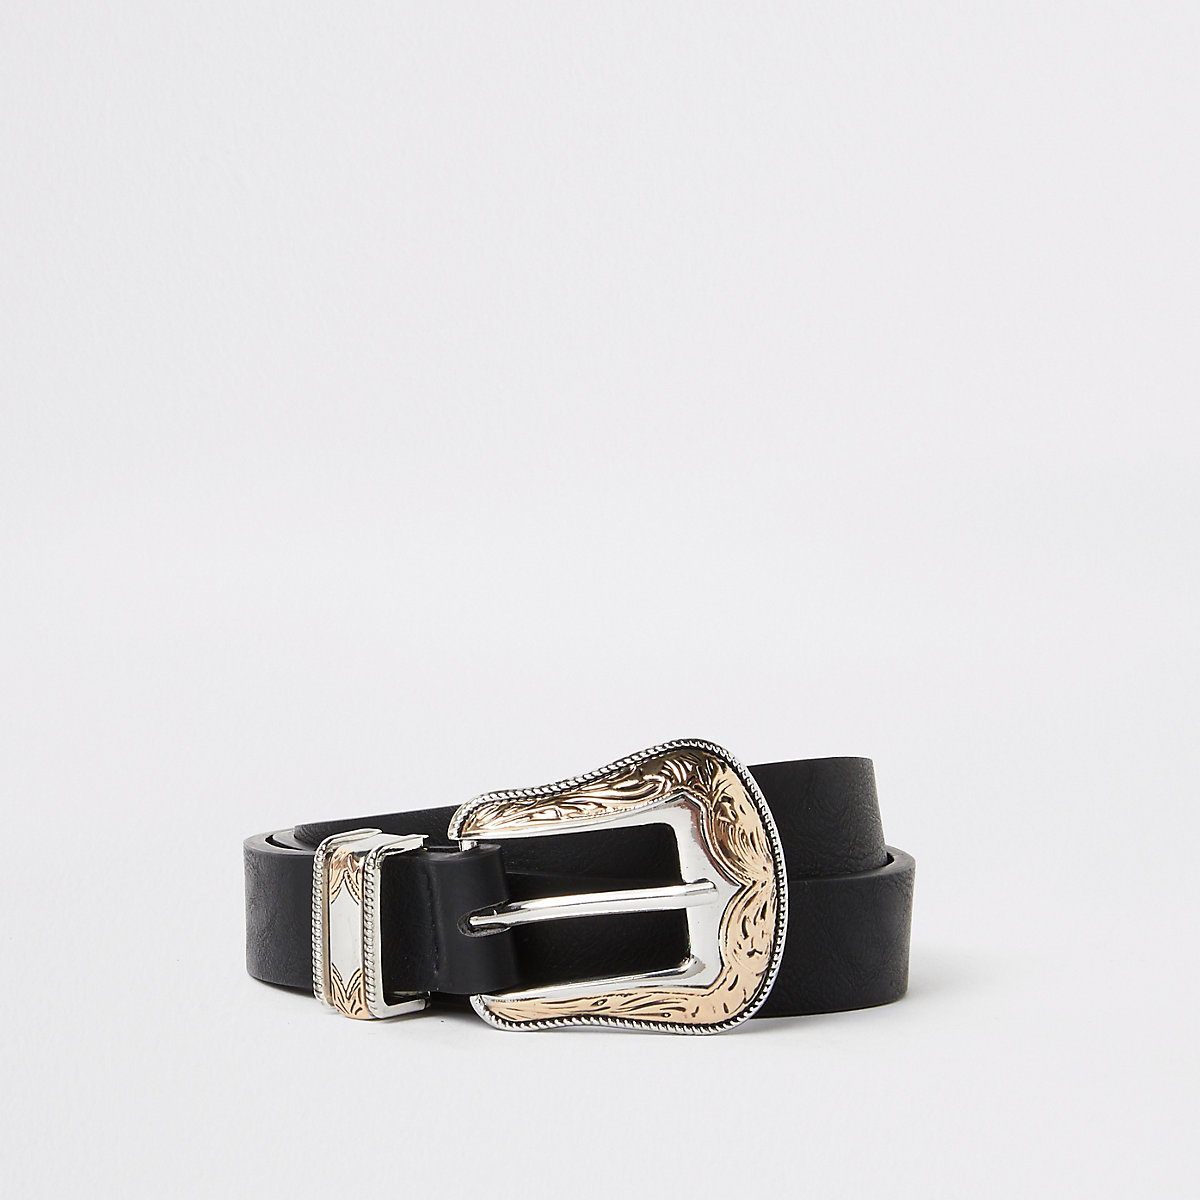 Black western style two-toned buckle belt